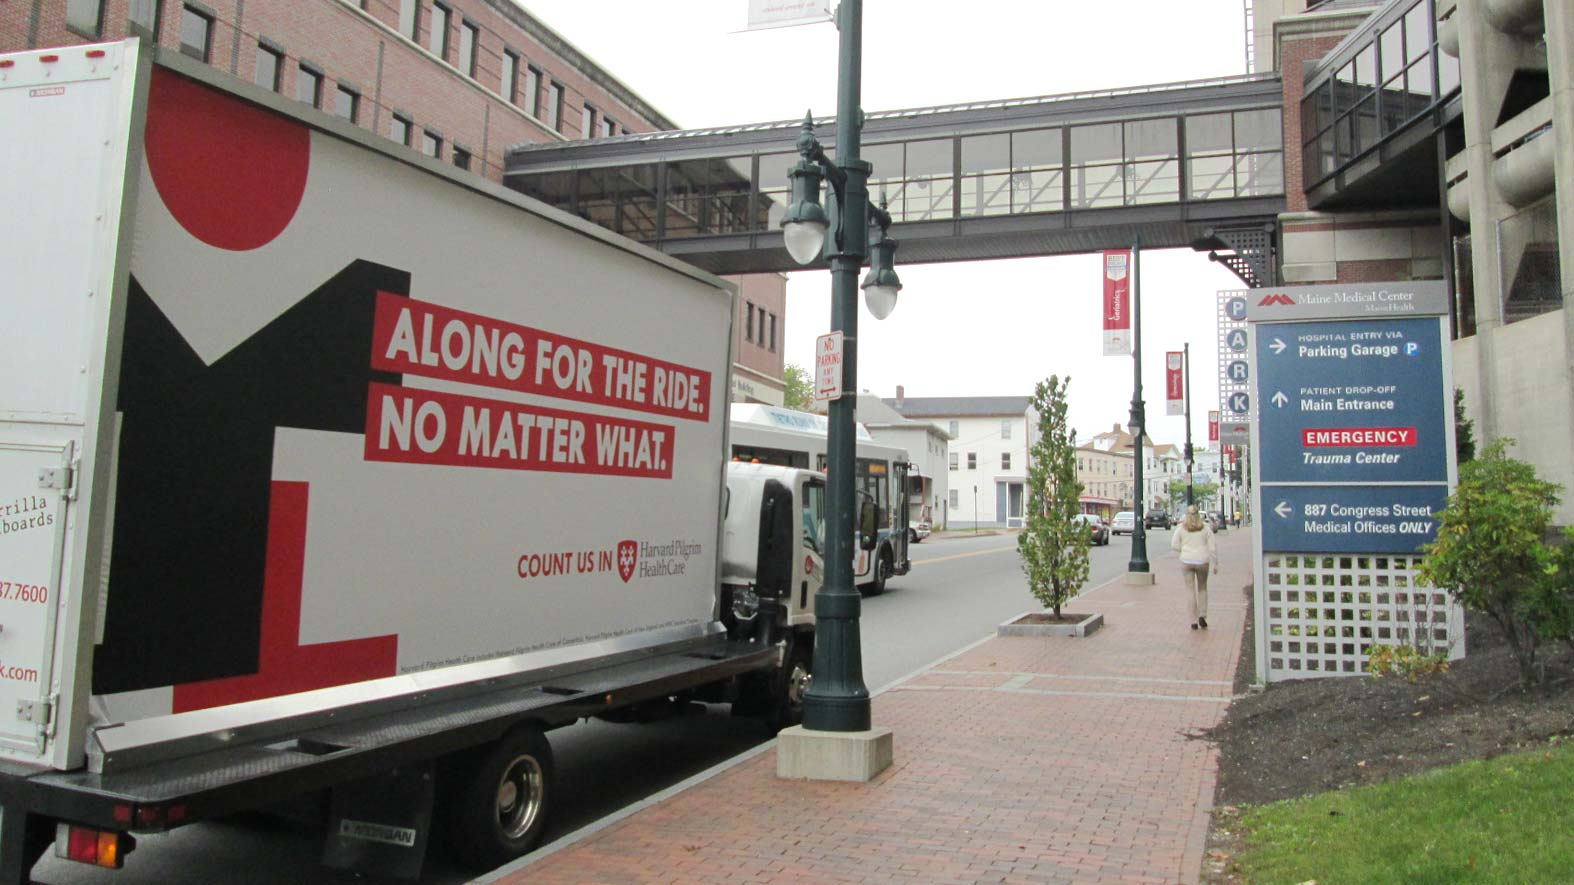 Mobile billboard truck stopped at Maine Medical Center, Portland.